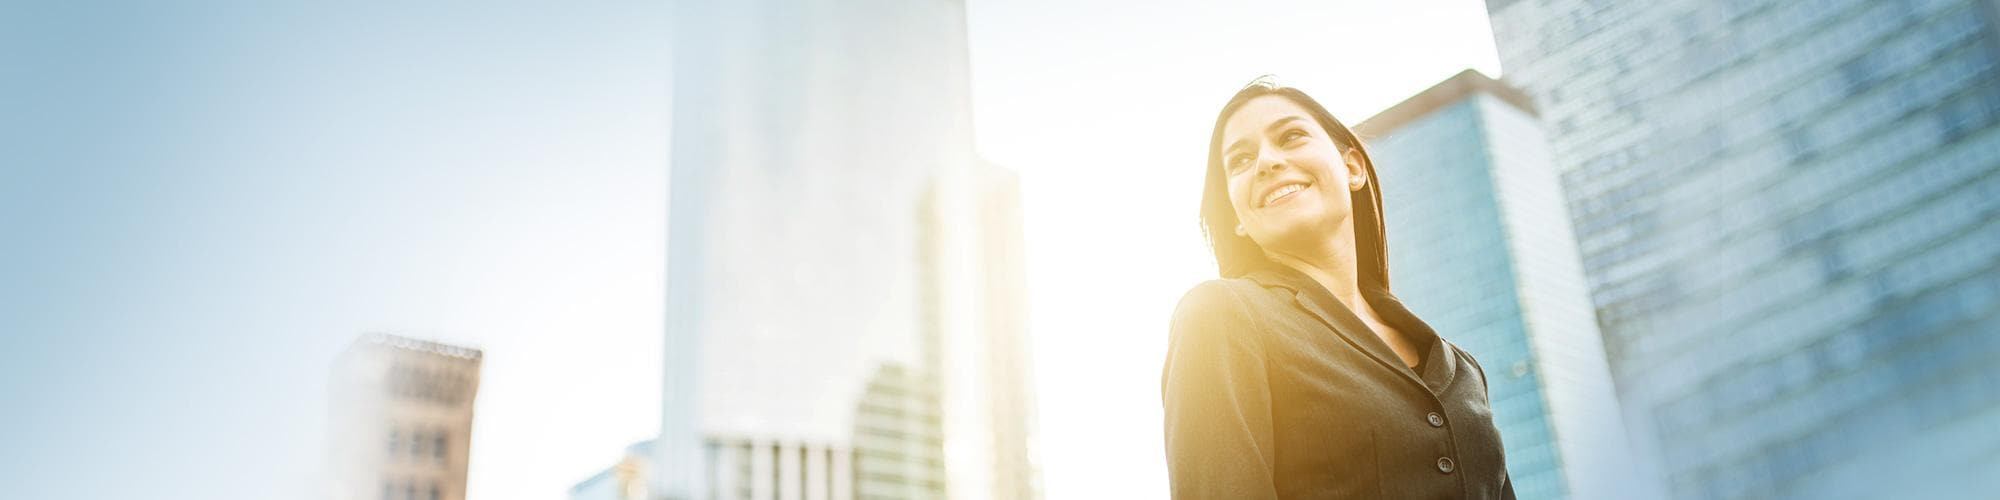 Woman in brown business suit looking up in city